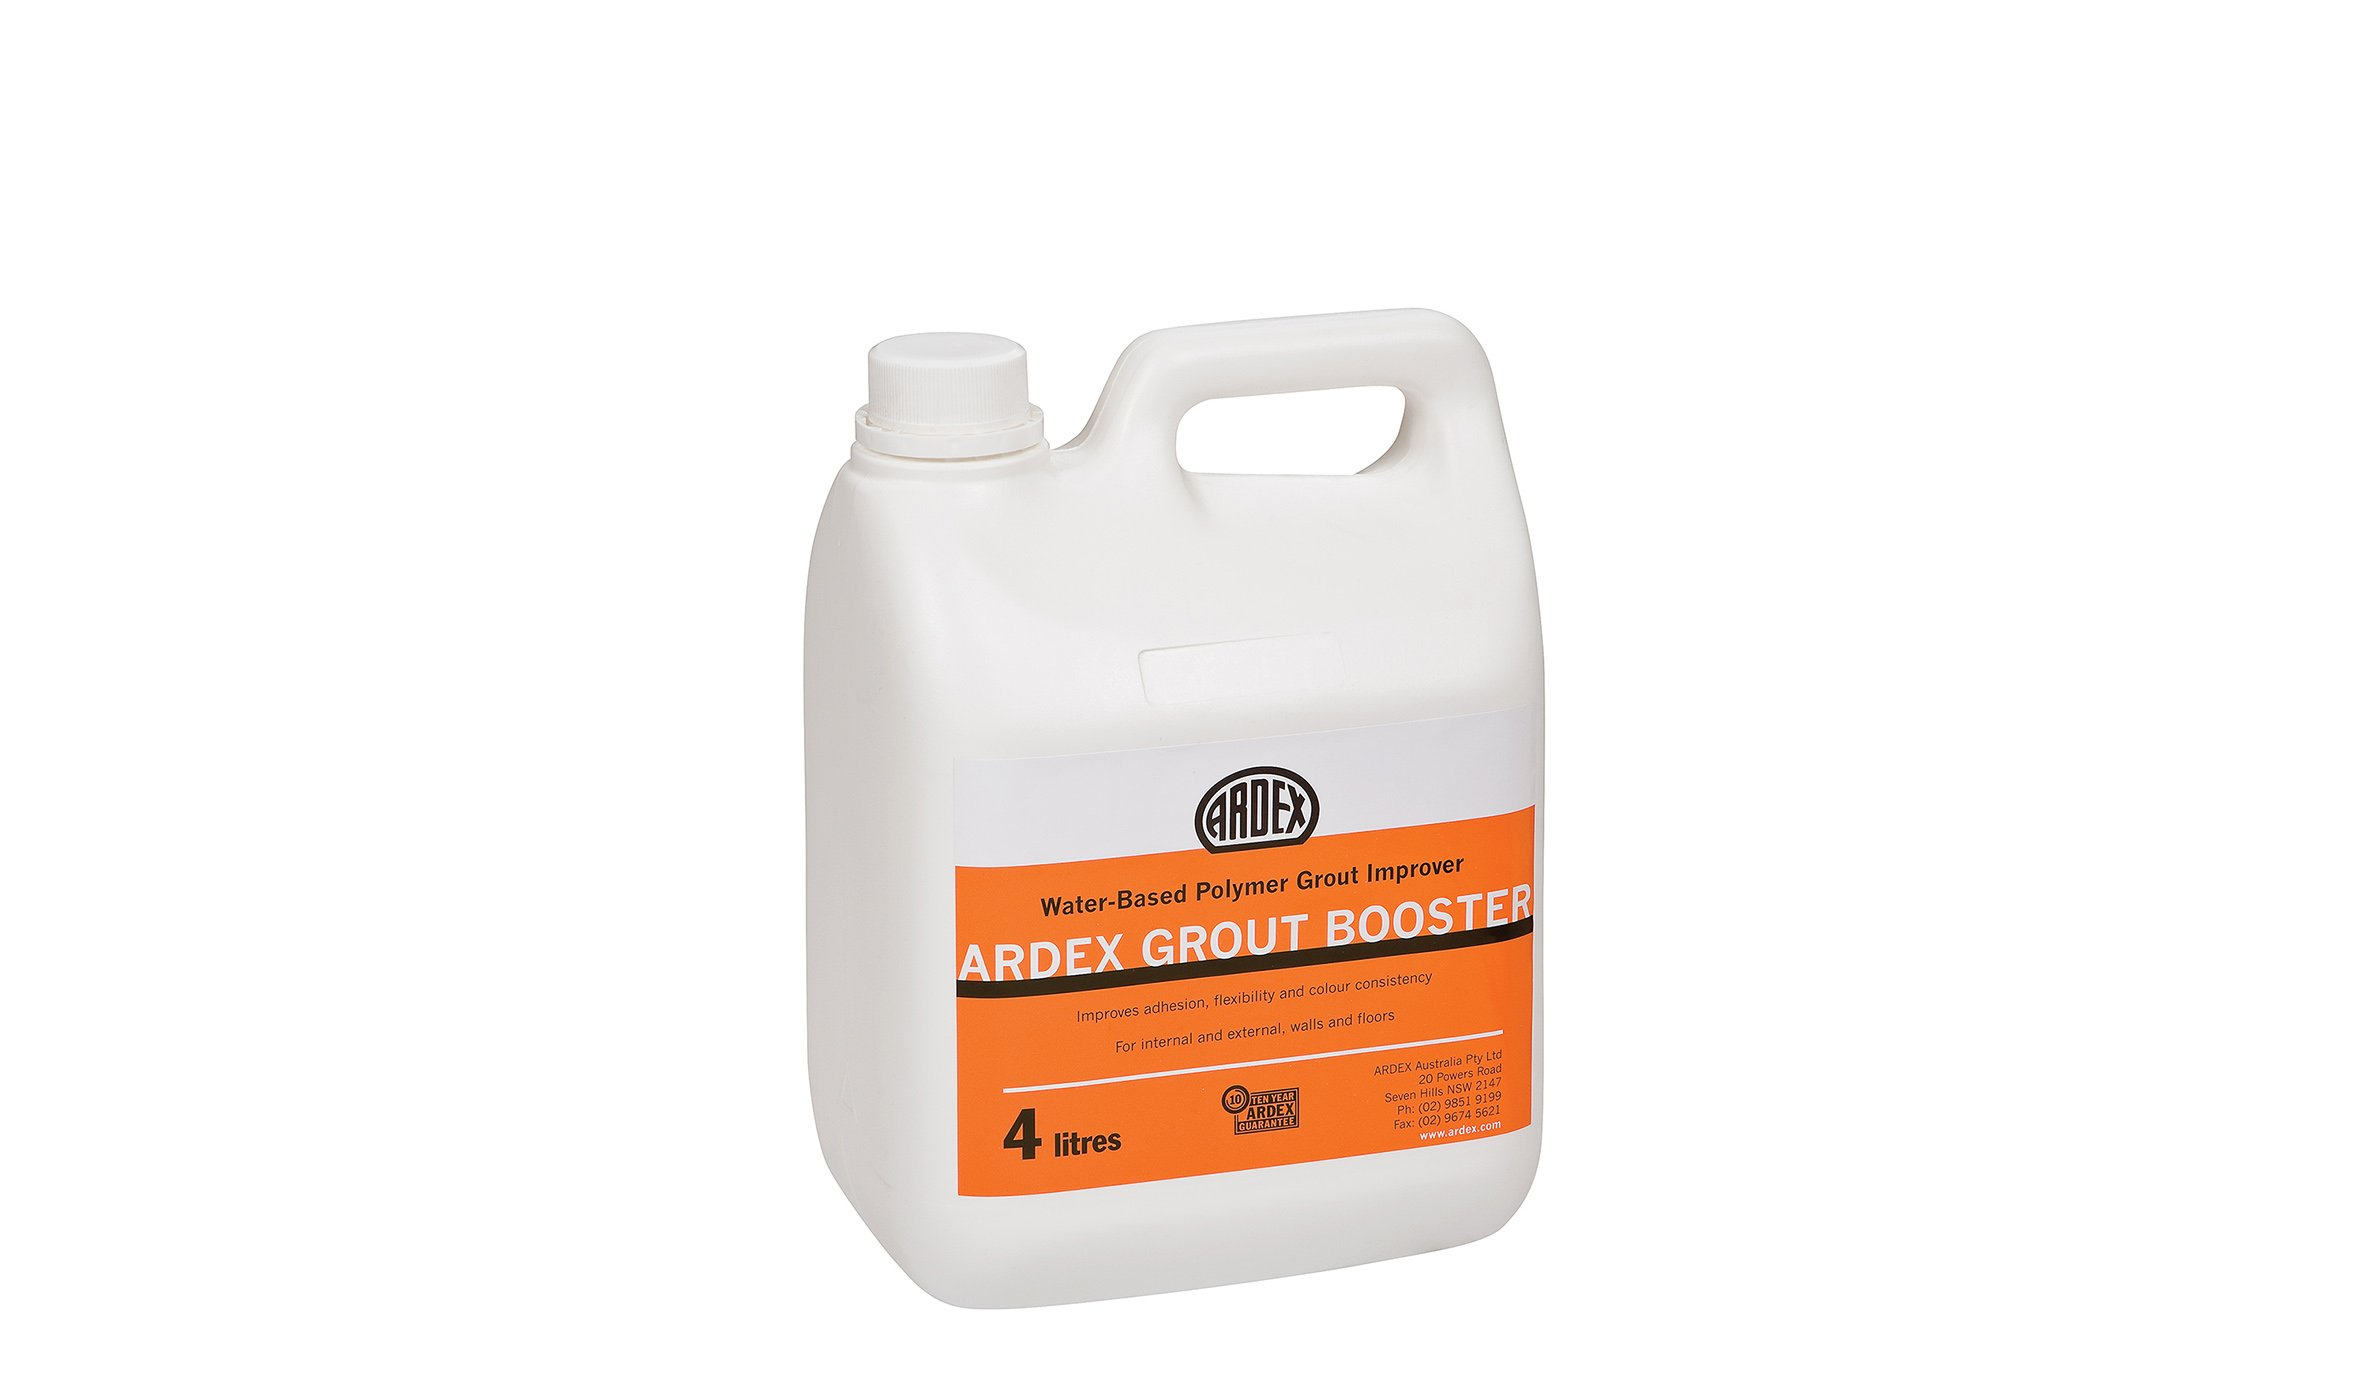 Ardex Grout Booster